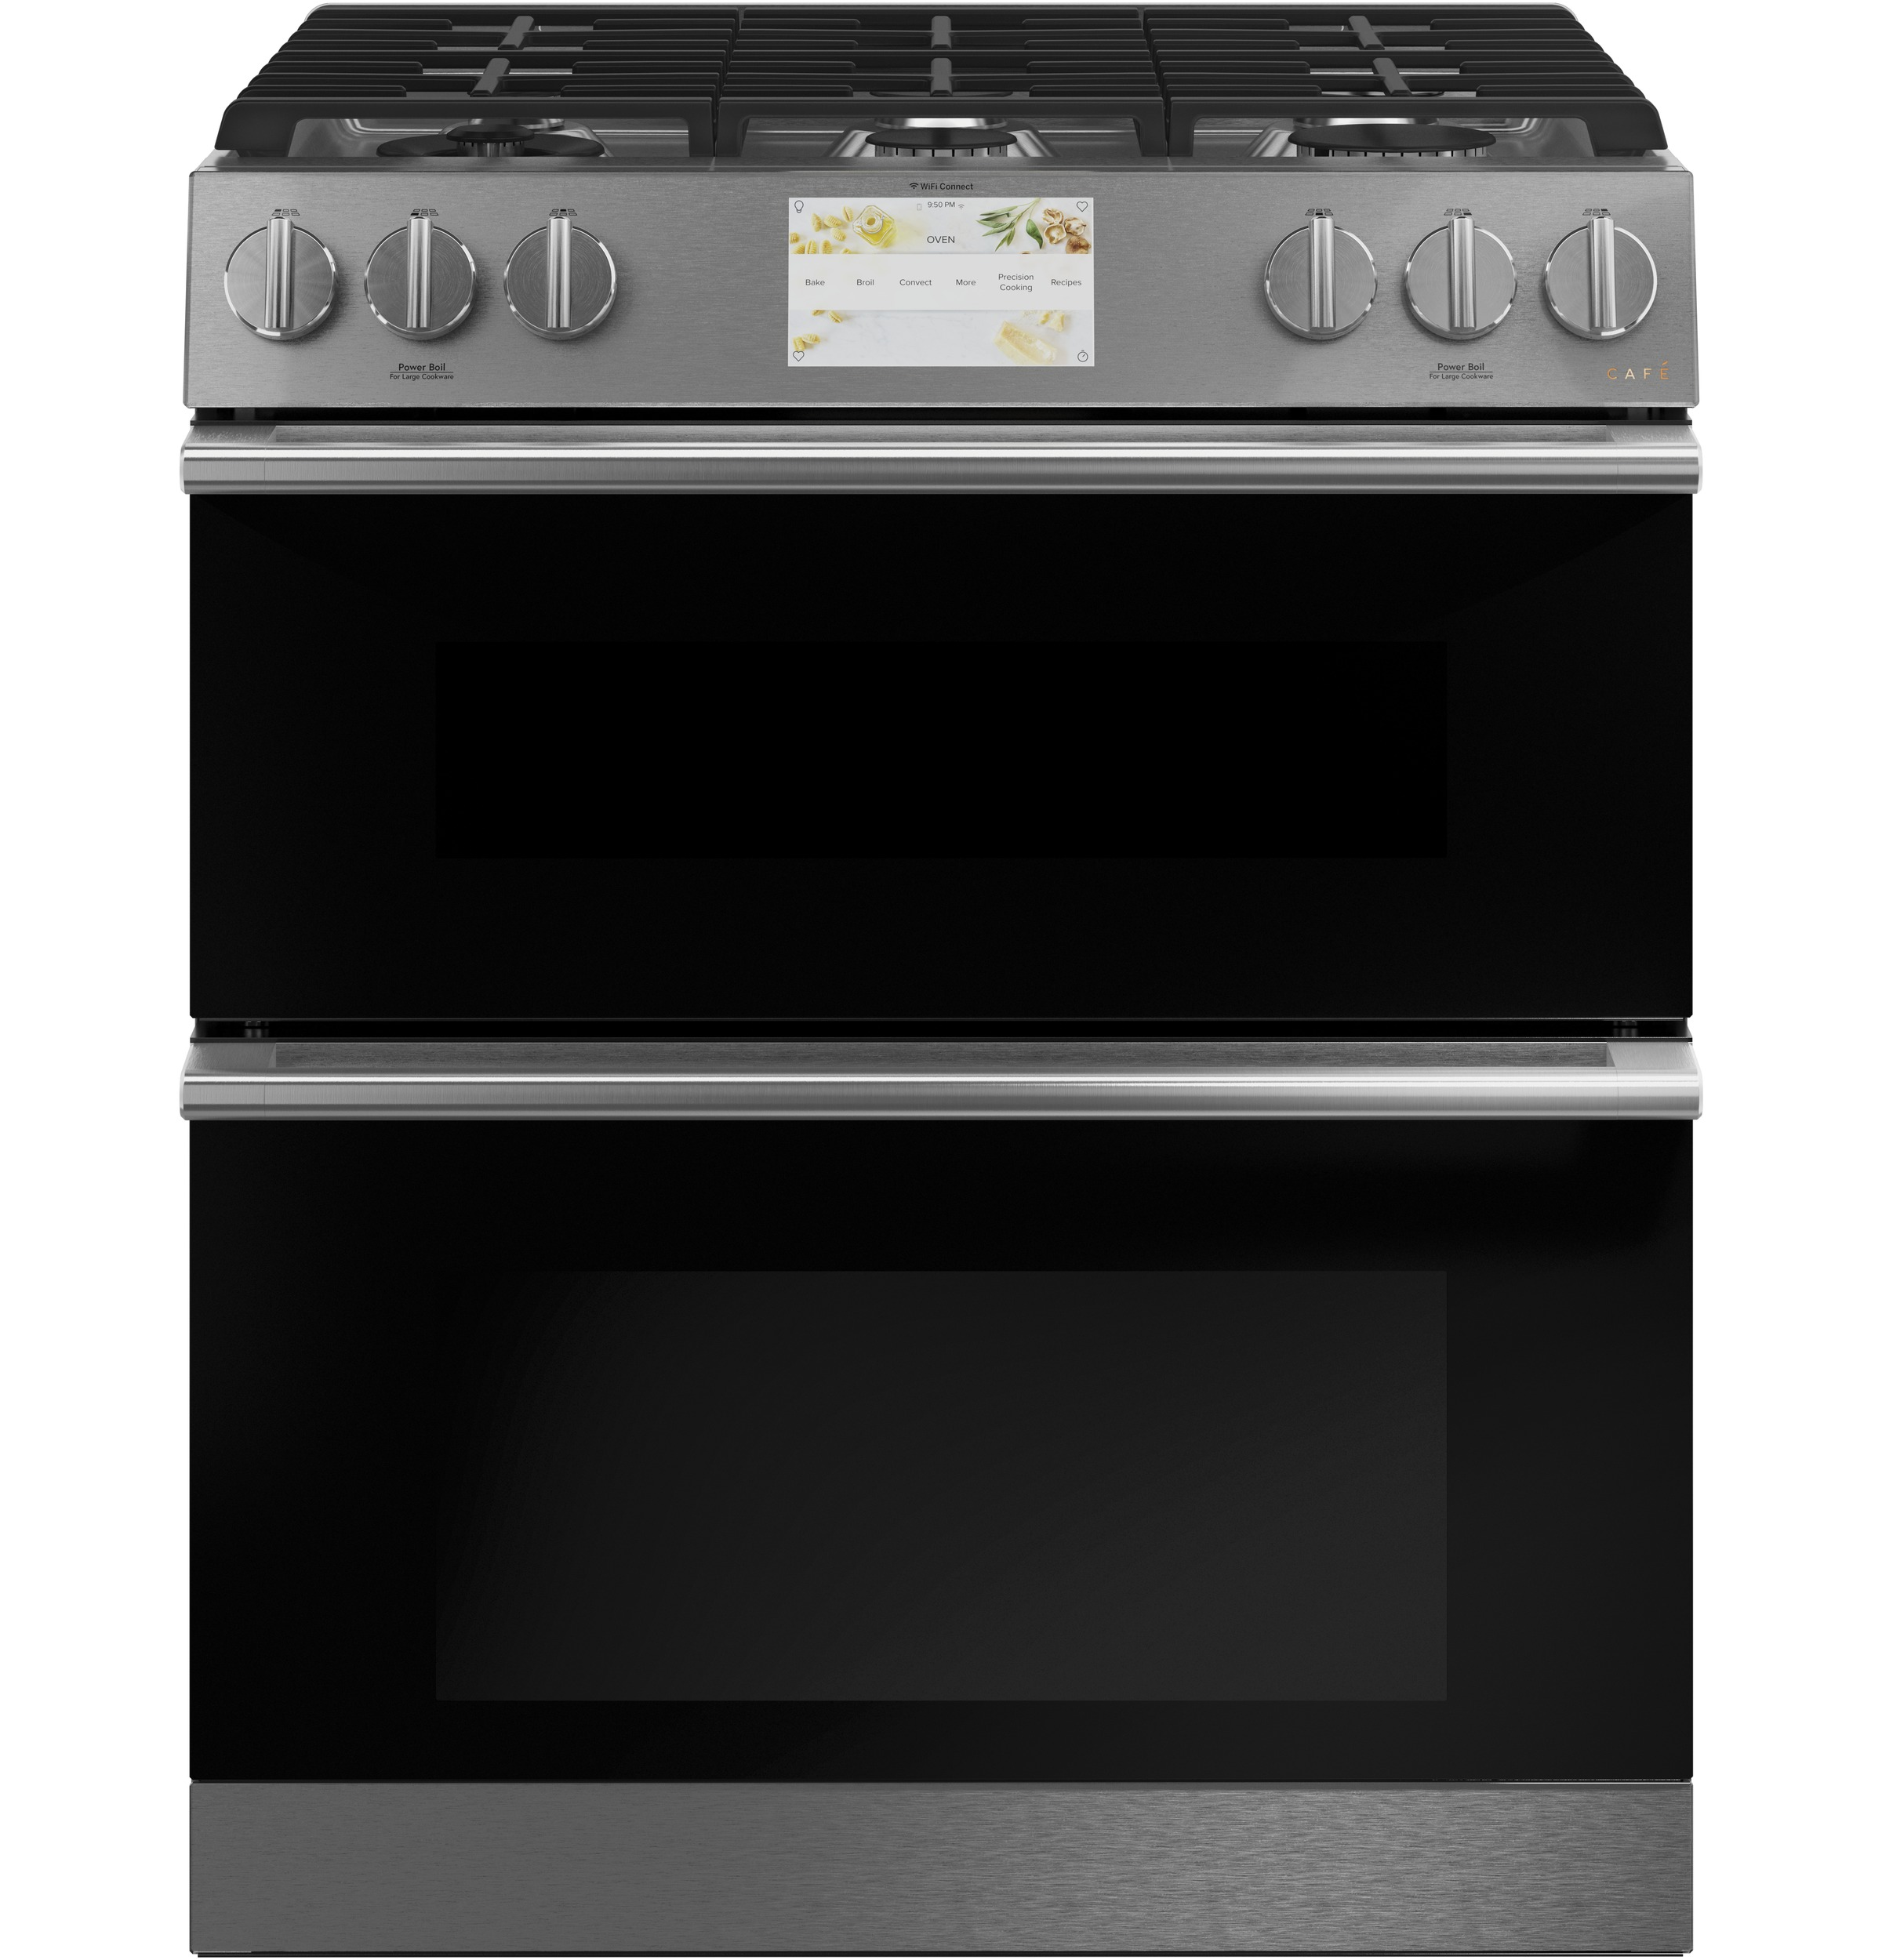 "Cafe Café™ 30"" Smart Slide-In, Front-Control, Dual-Fuel, Double-Oven Range with Convection in Platinum Glass"